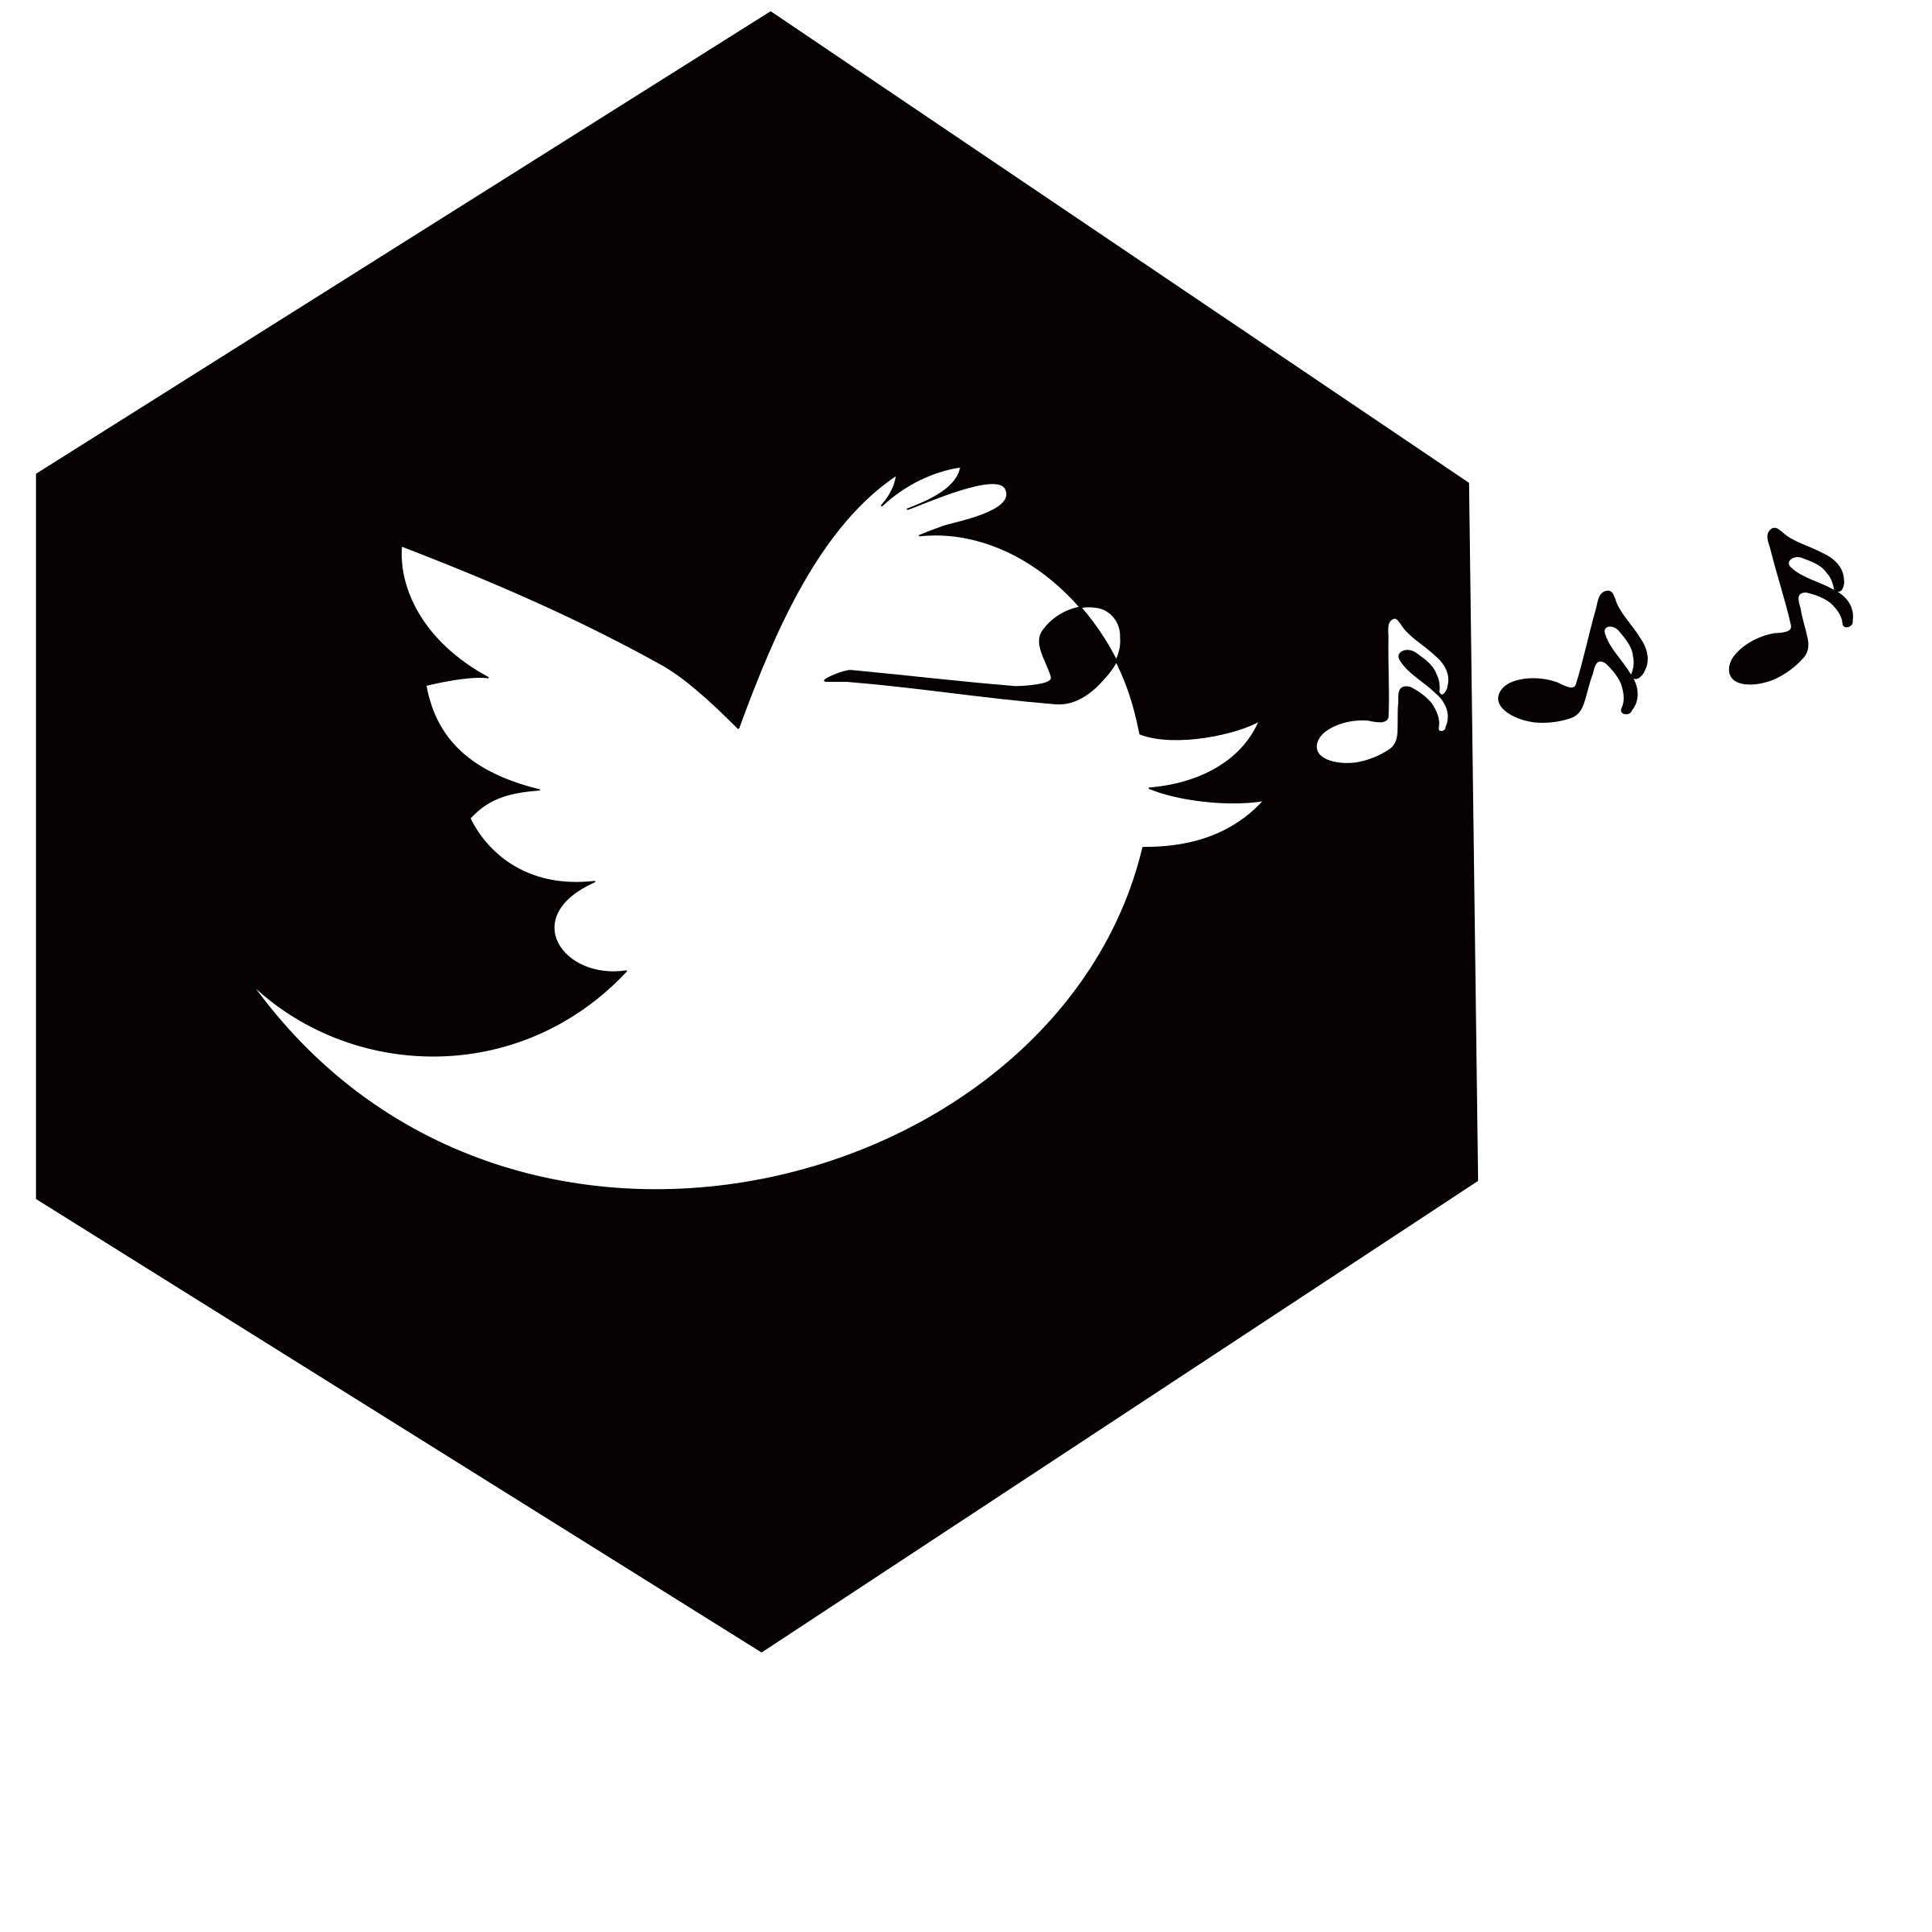 Morphing icons free and. Twitter icon black png